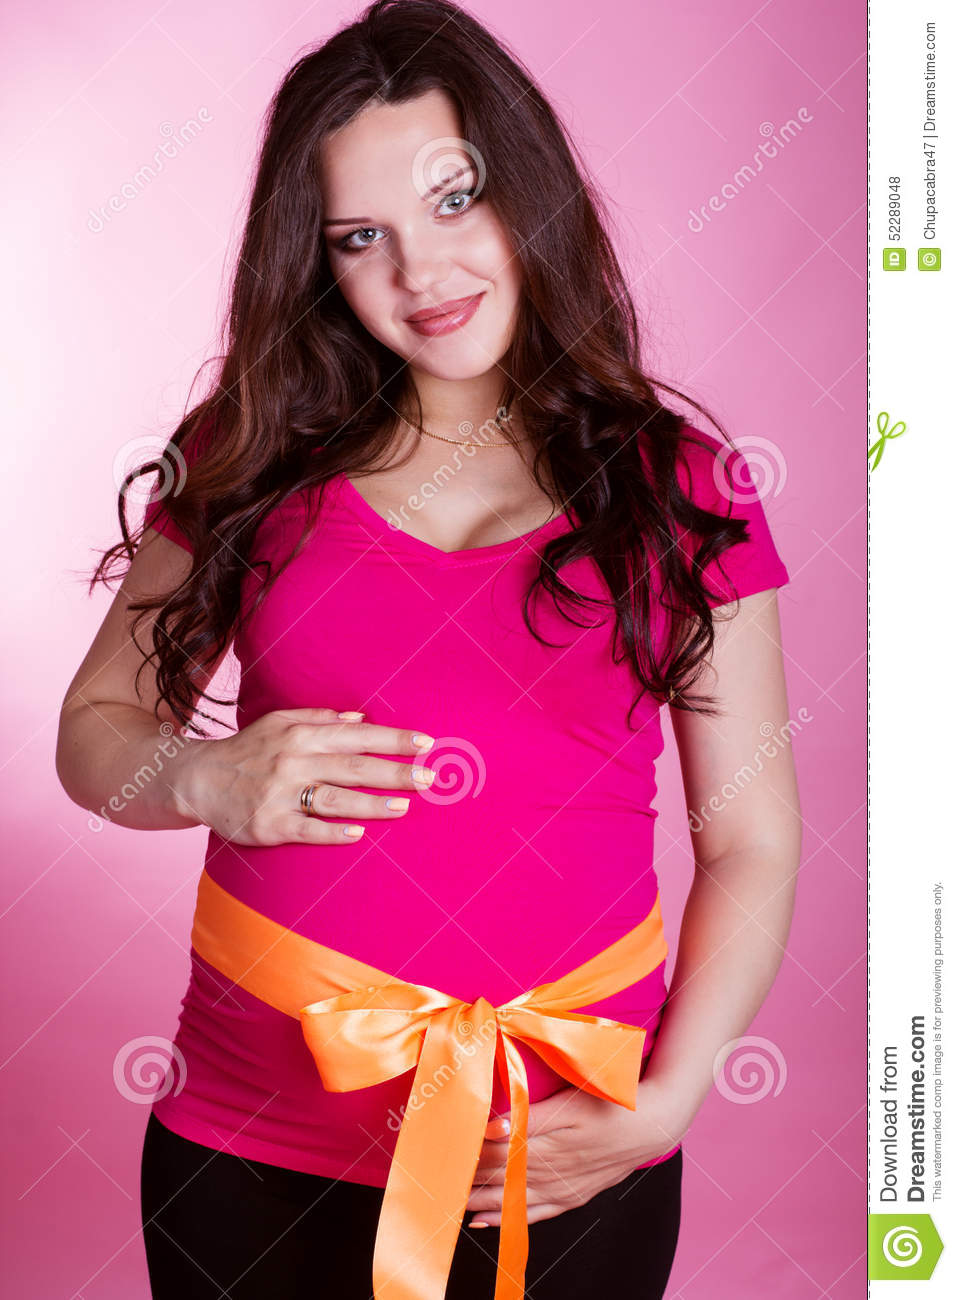 Pregnant woman with orange ribbon on belly